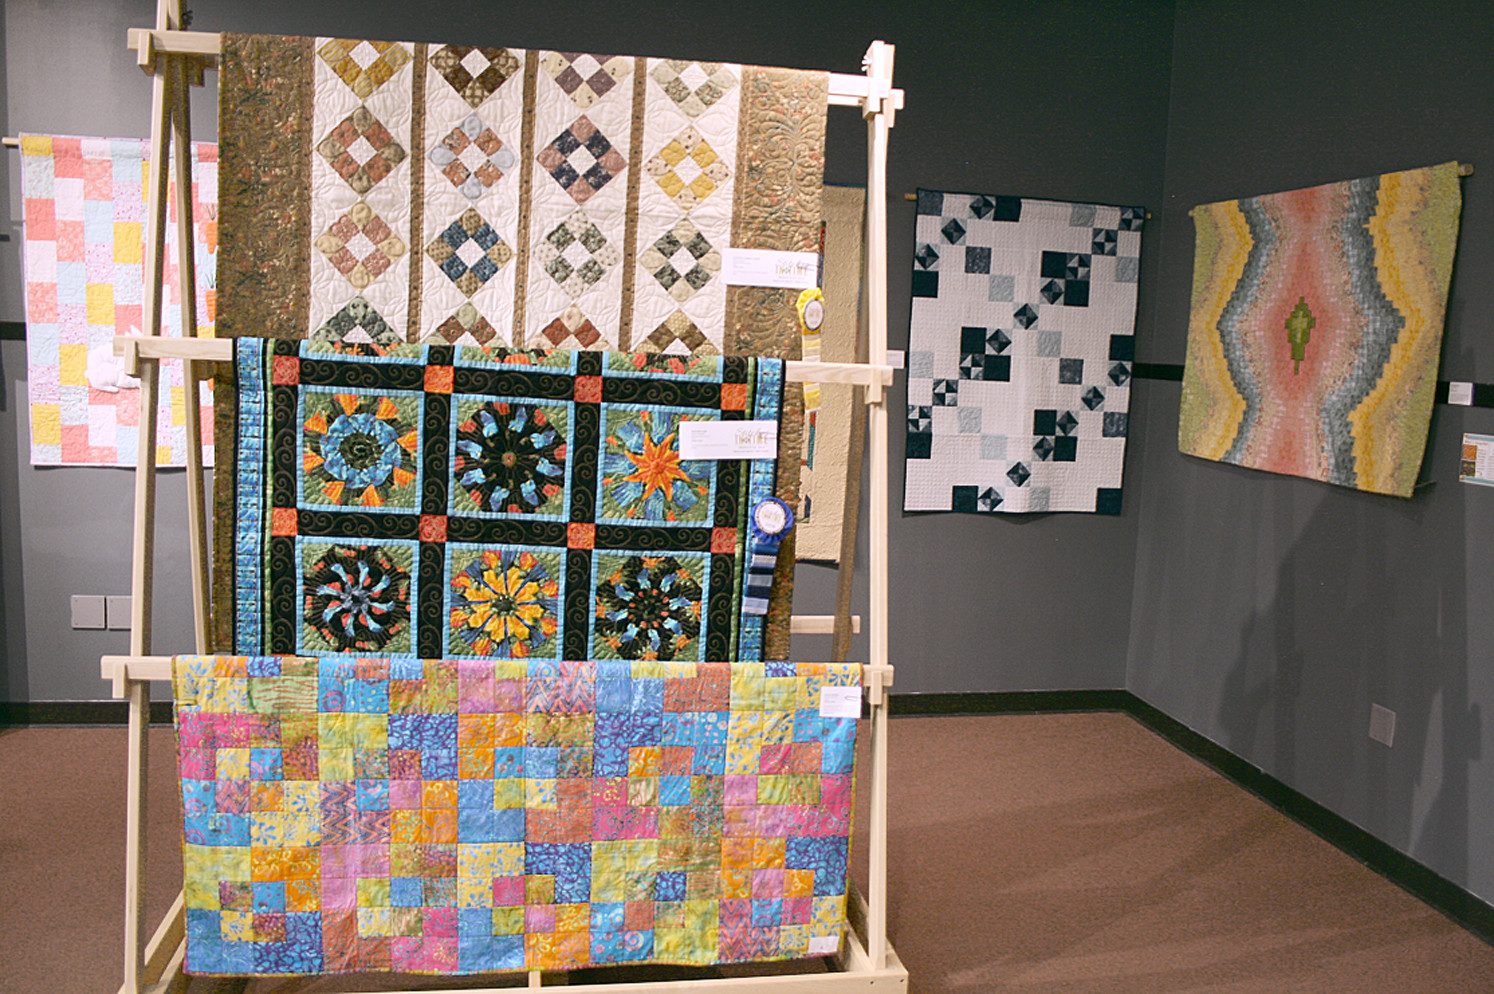 Some of the quilt winners for the show were not able to make it due to travel or personal reasons, but their absence did not stop those in attendance from admiring their hard work.